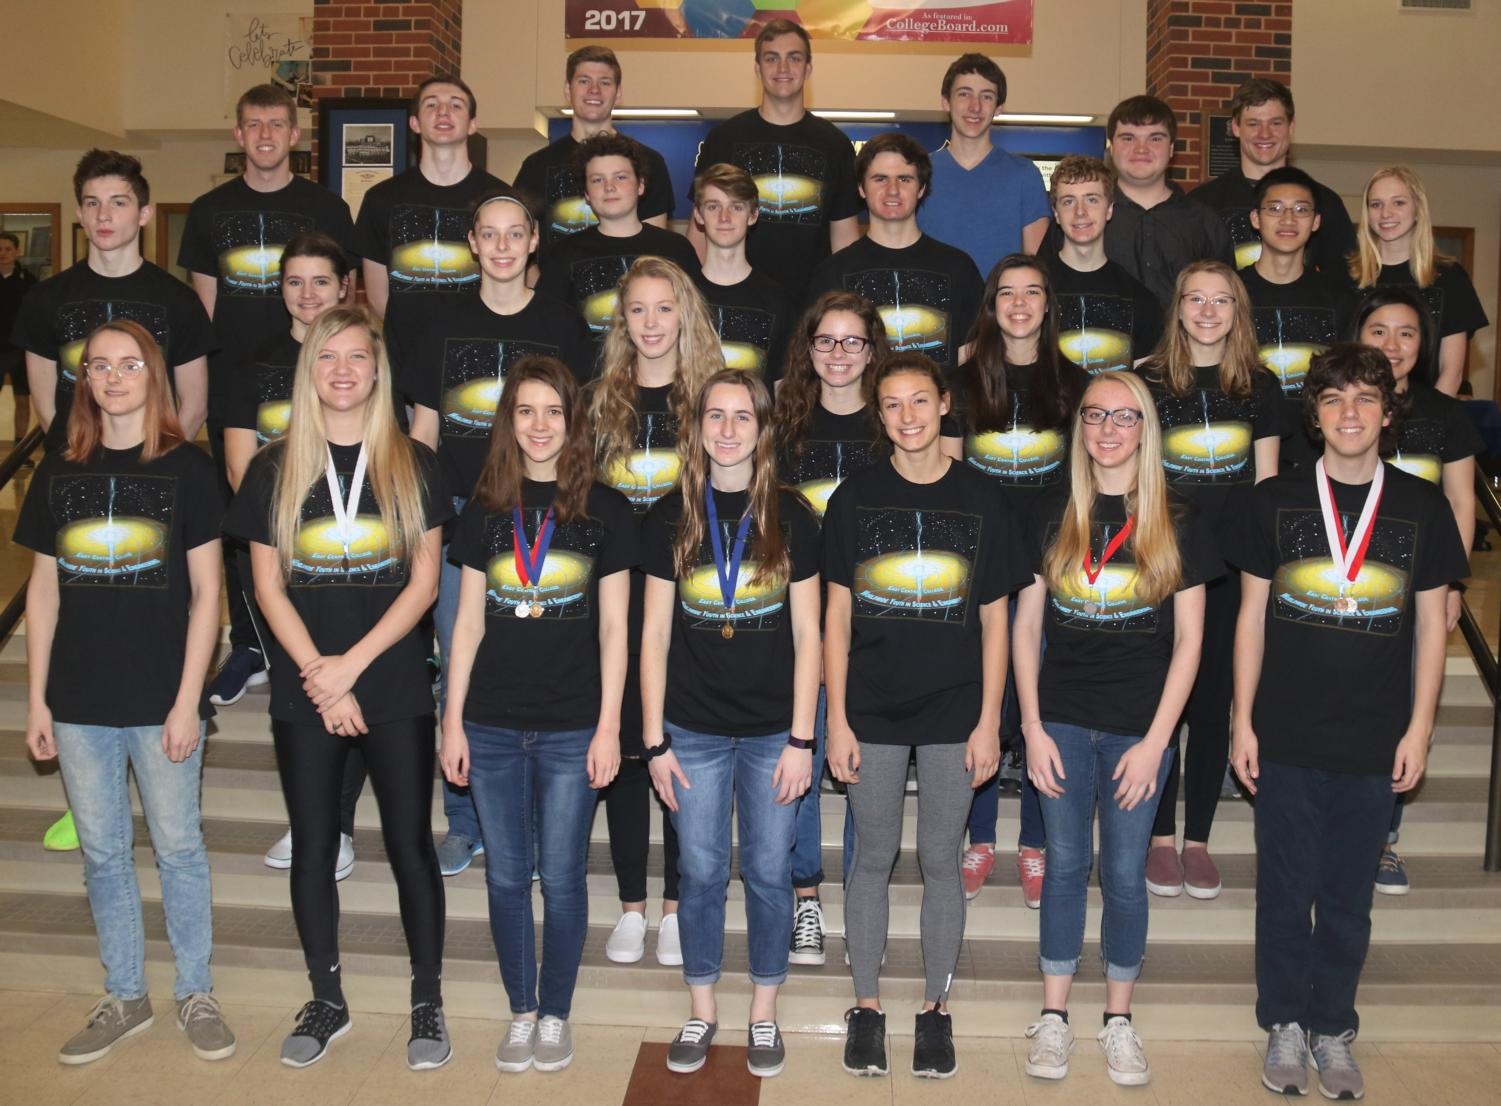 """The WHS WYSE poses for a picture after the team competed Feb. 13, 2018 at East Central College. """"The preference [for the team] is senior, juniors and then sophomores, but sophomores are rare unless they're really strong in a subject,"""